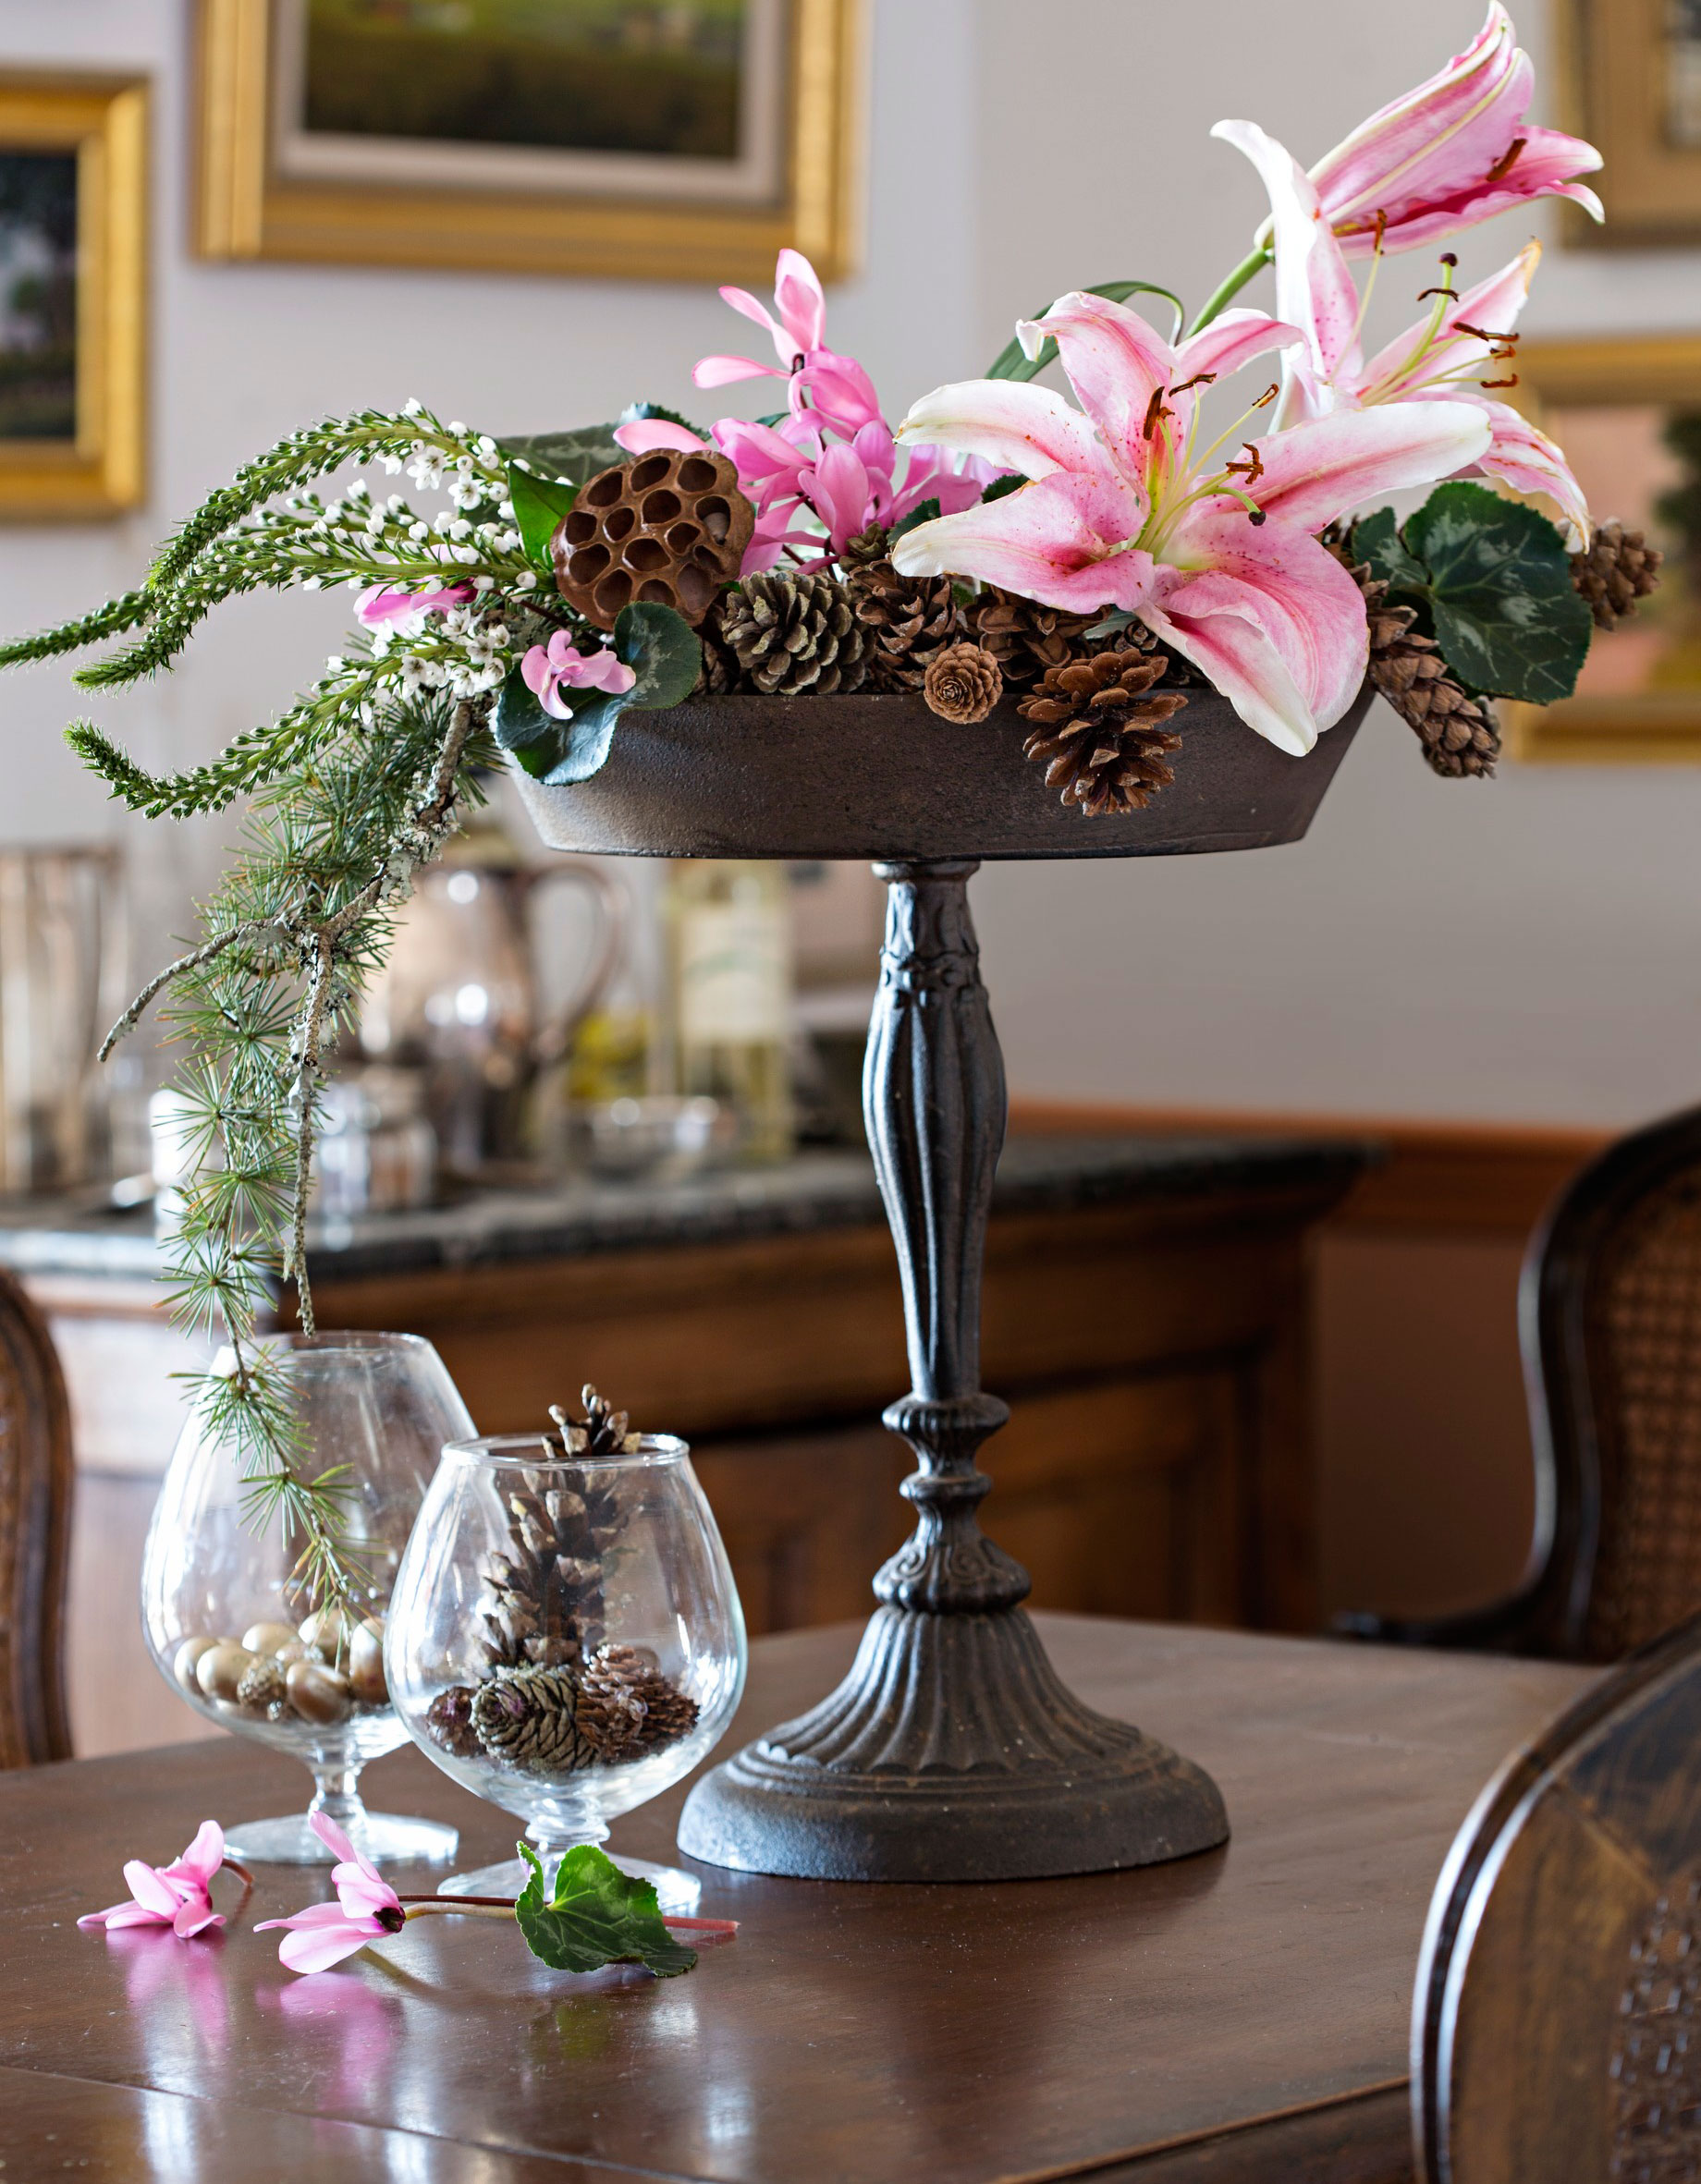 Lilies and cones in footed dish